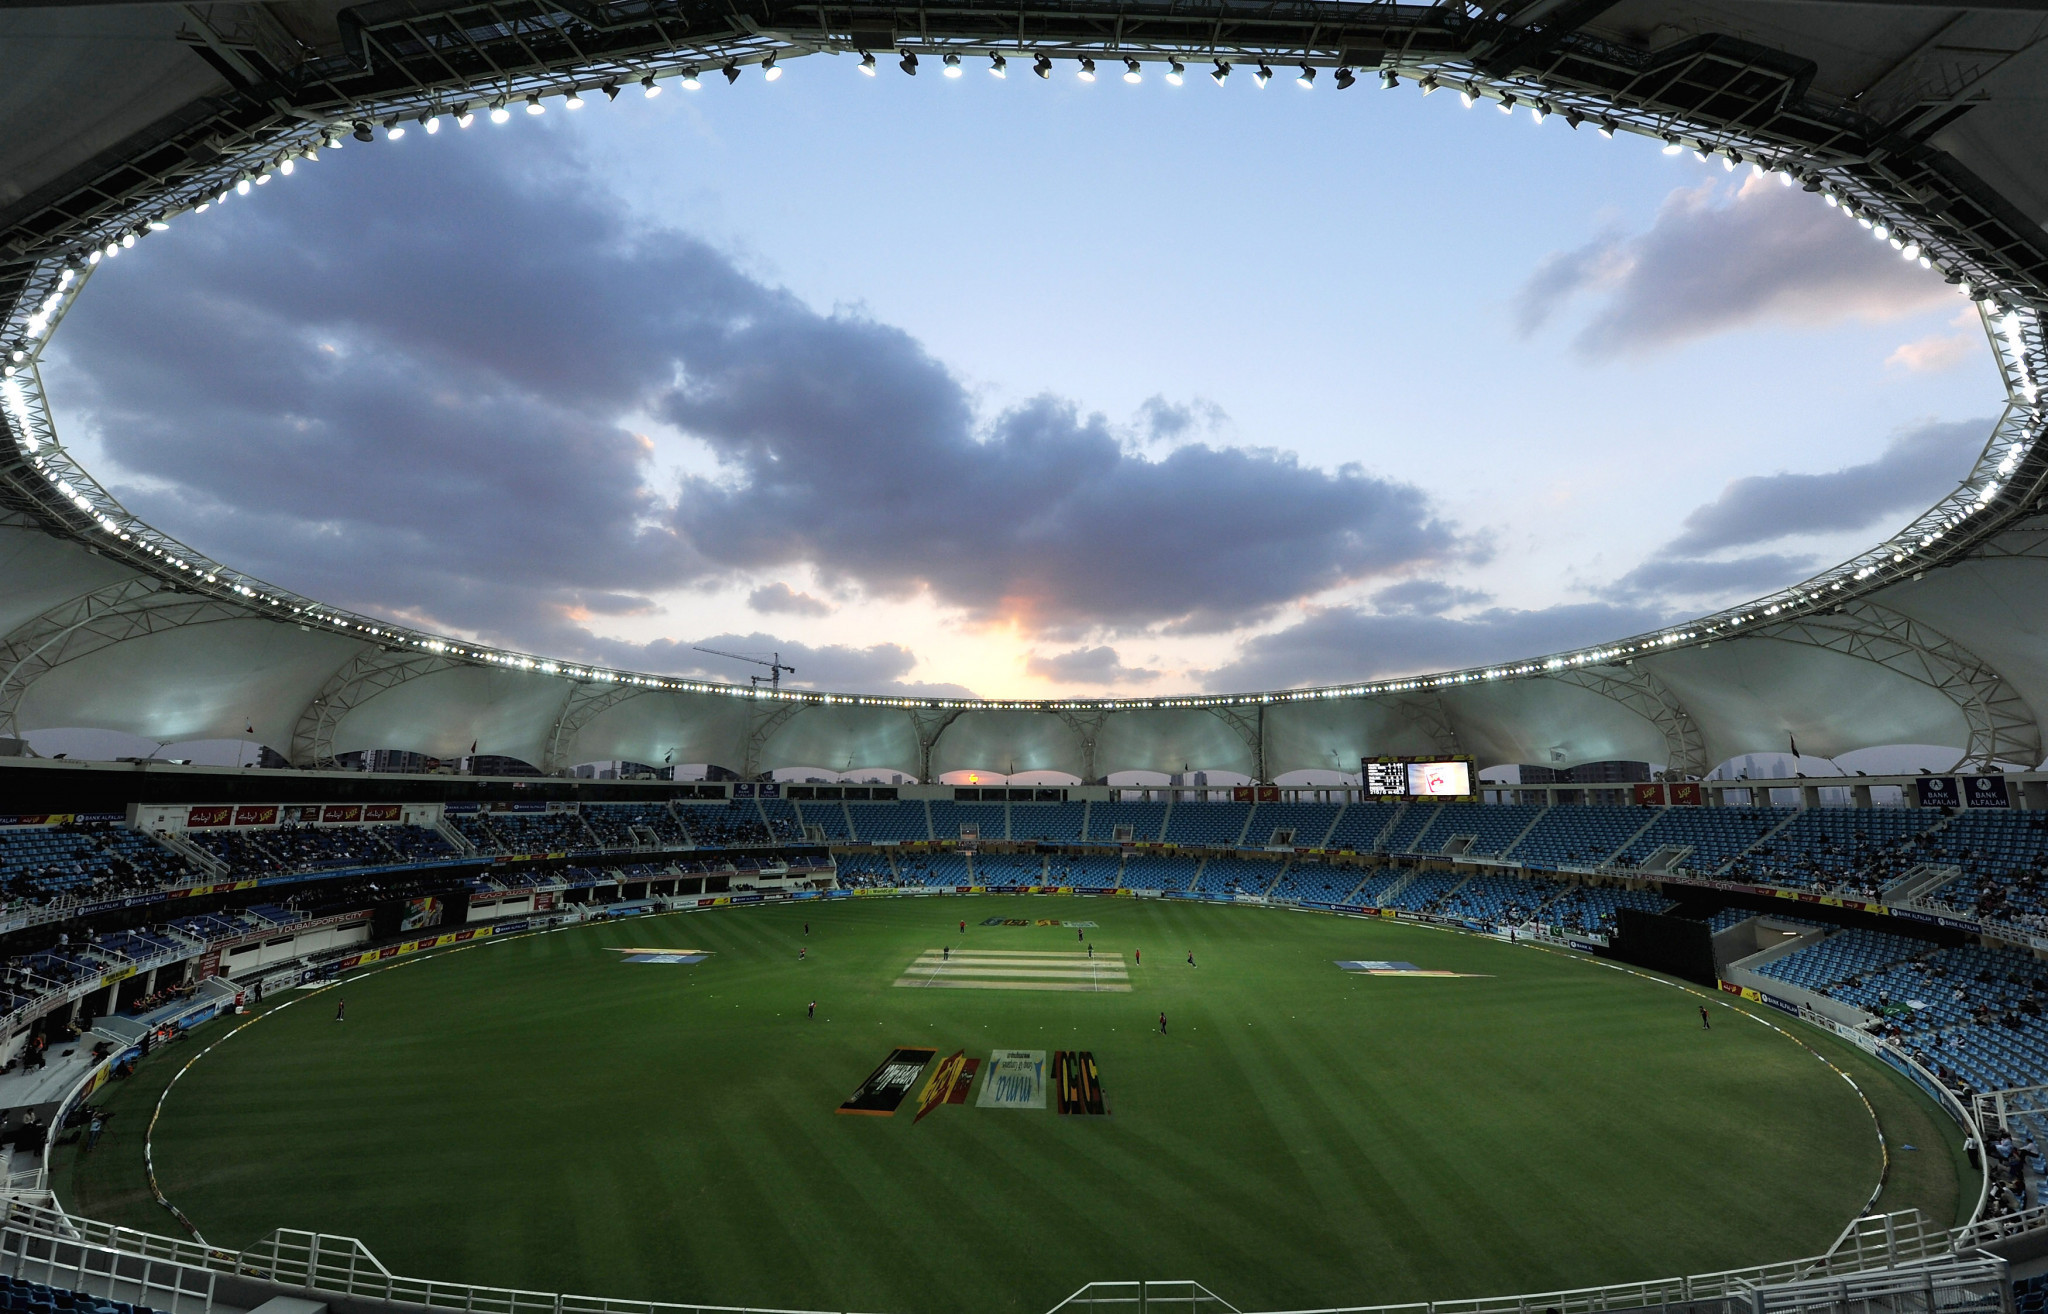 ICC Board planning for UAE to host T20 World Cup, approves expansion of major men's tournaments